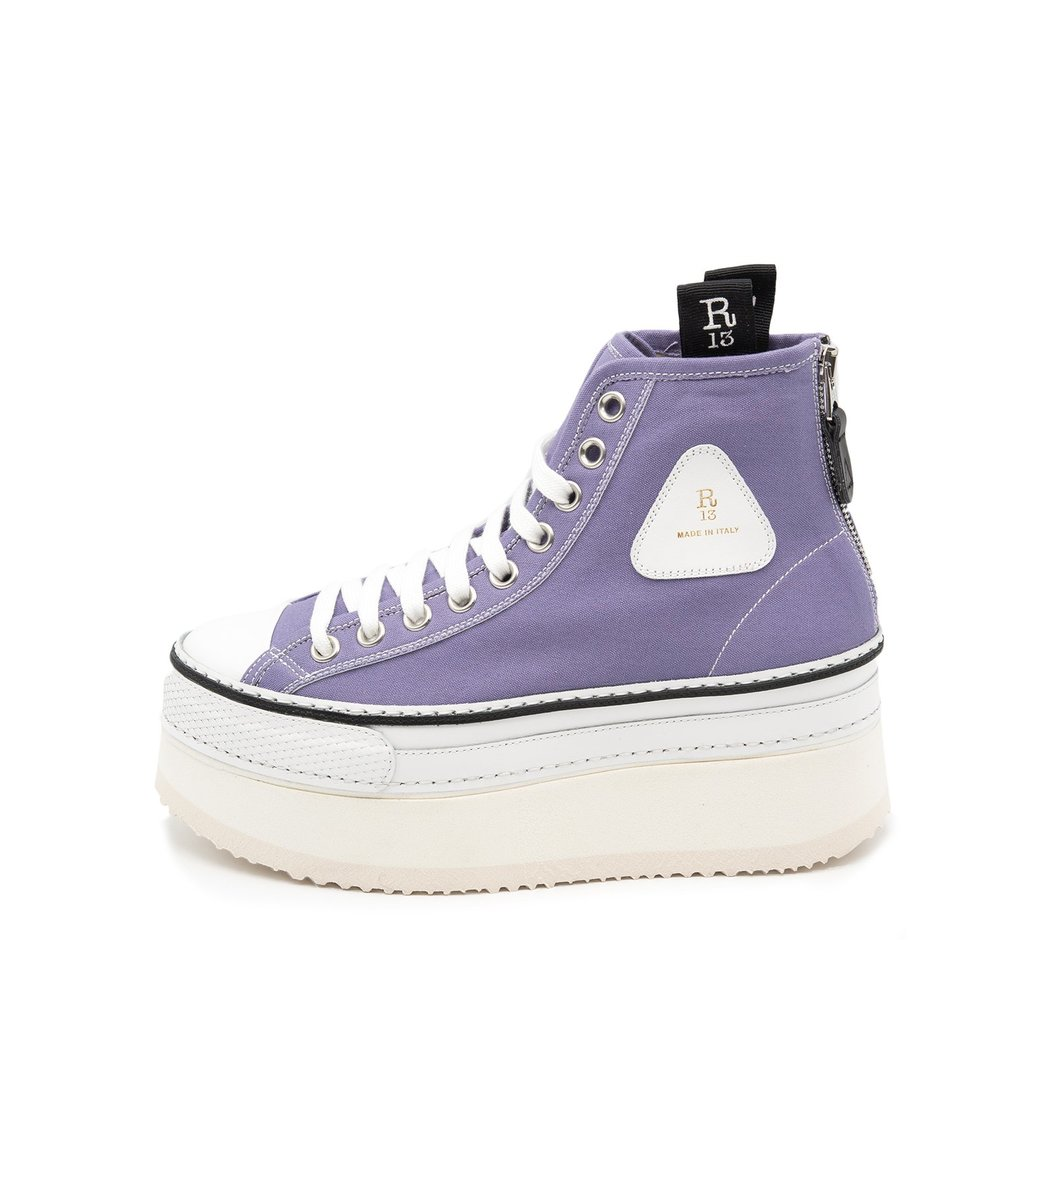 R13 Platform High Top Sneaker in Lilac